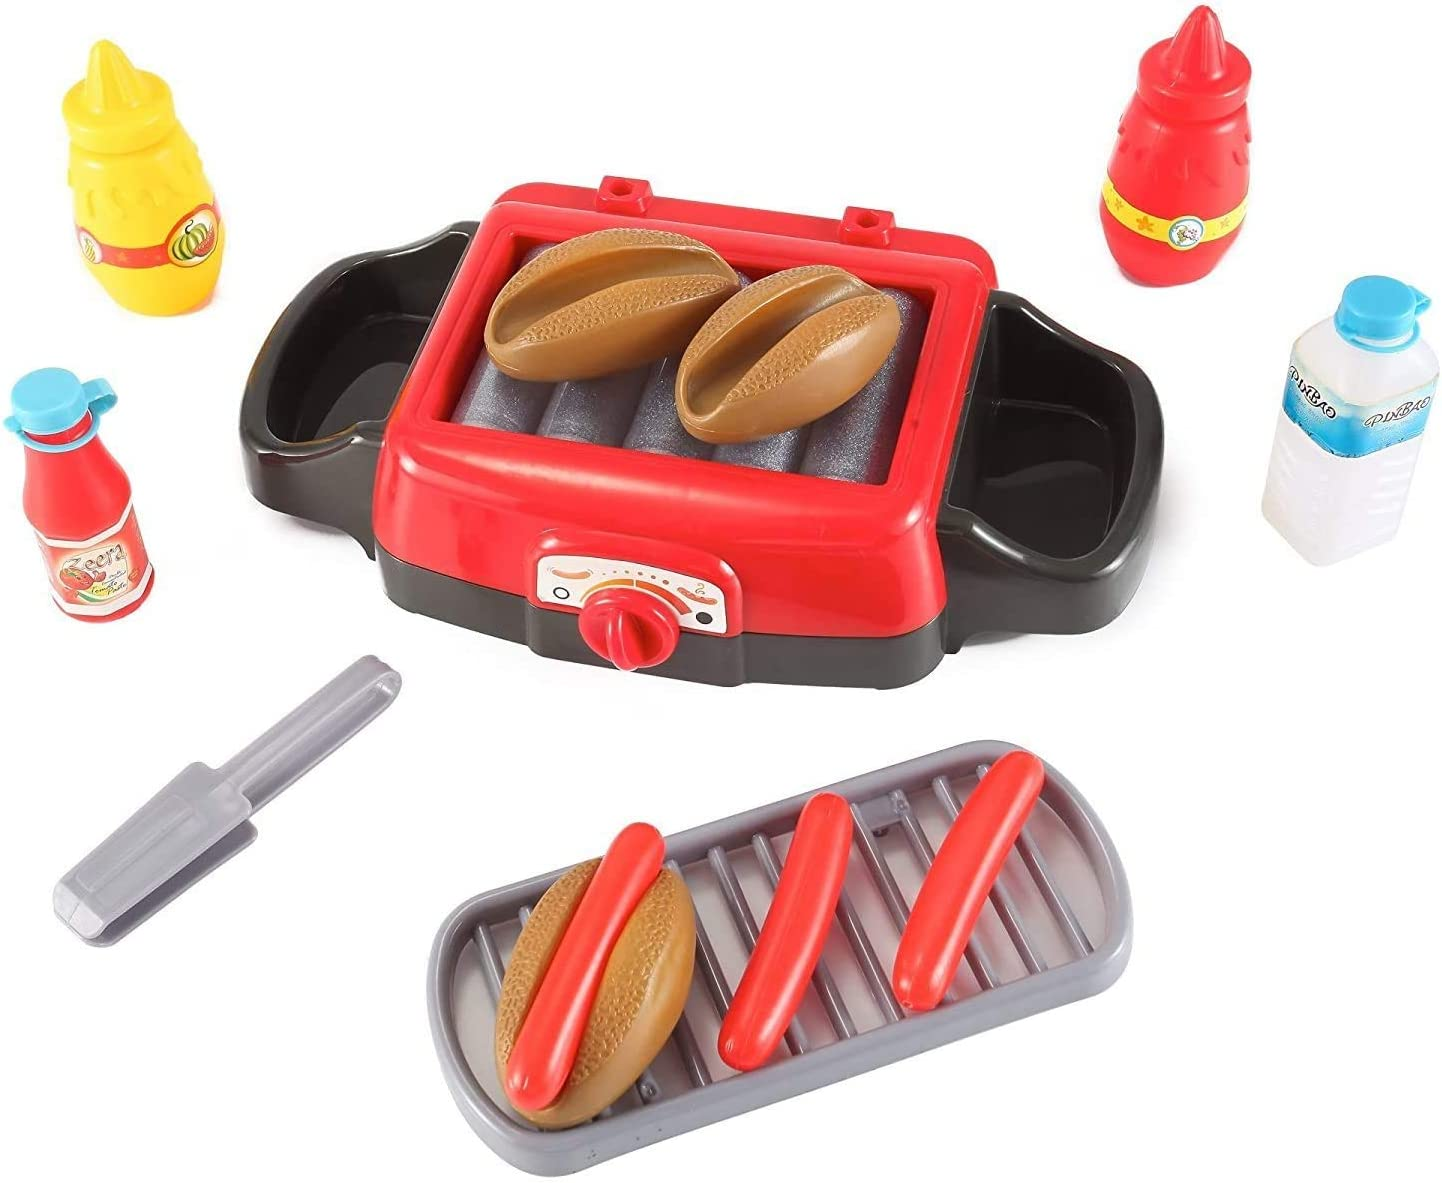 Exclusive CD Cyber Distributors Hot Dog Roller Grill Pretend Food Playset